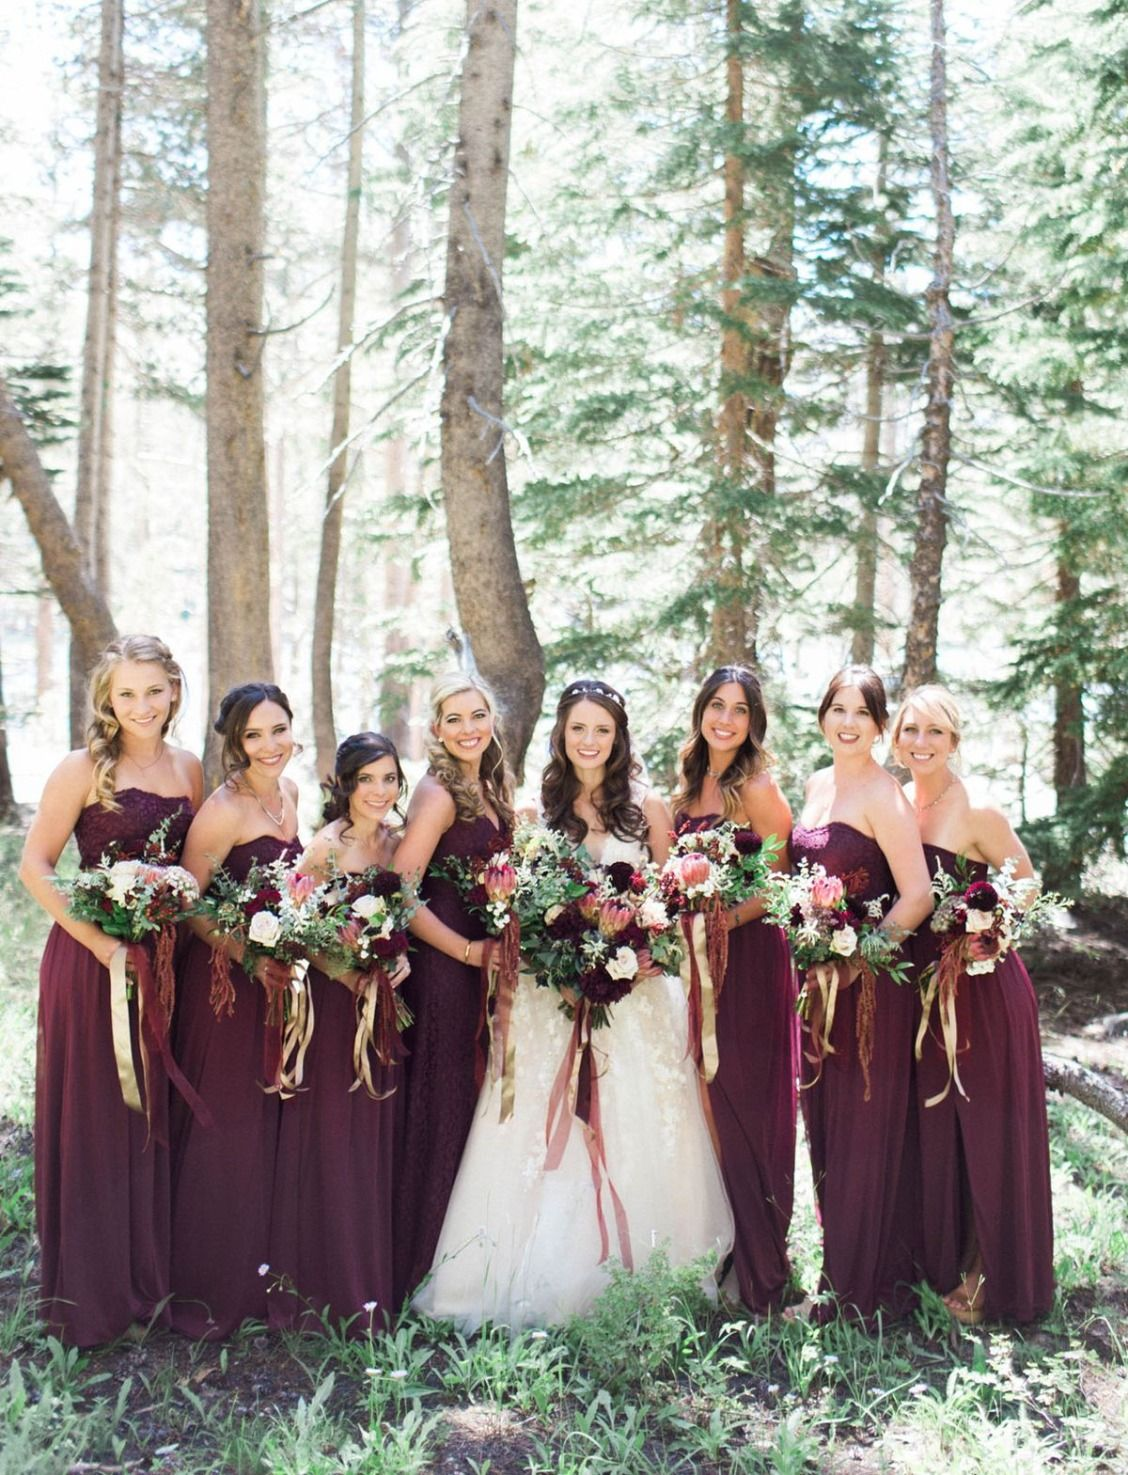 Fall wedding inspiration maroon bridesmaids in long wine lace and fall wedding inspiration maroon bridesmaids in long wine lace and mesh davids bridal bridesmaid dresses ombrellifo Gallery